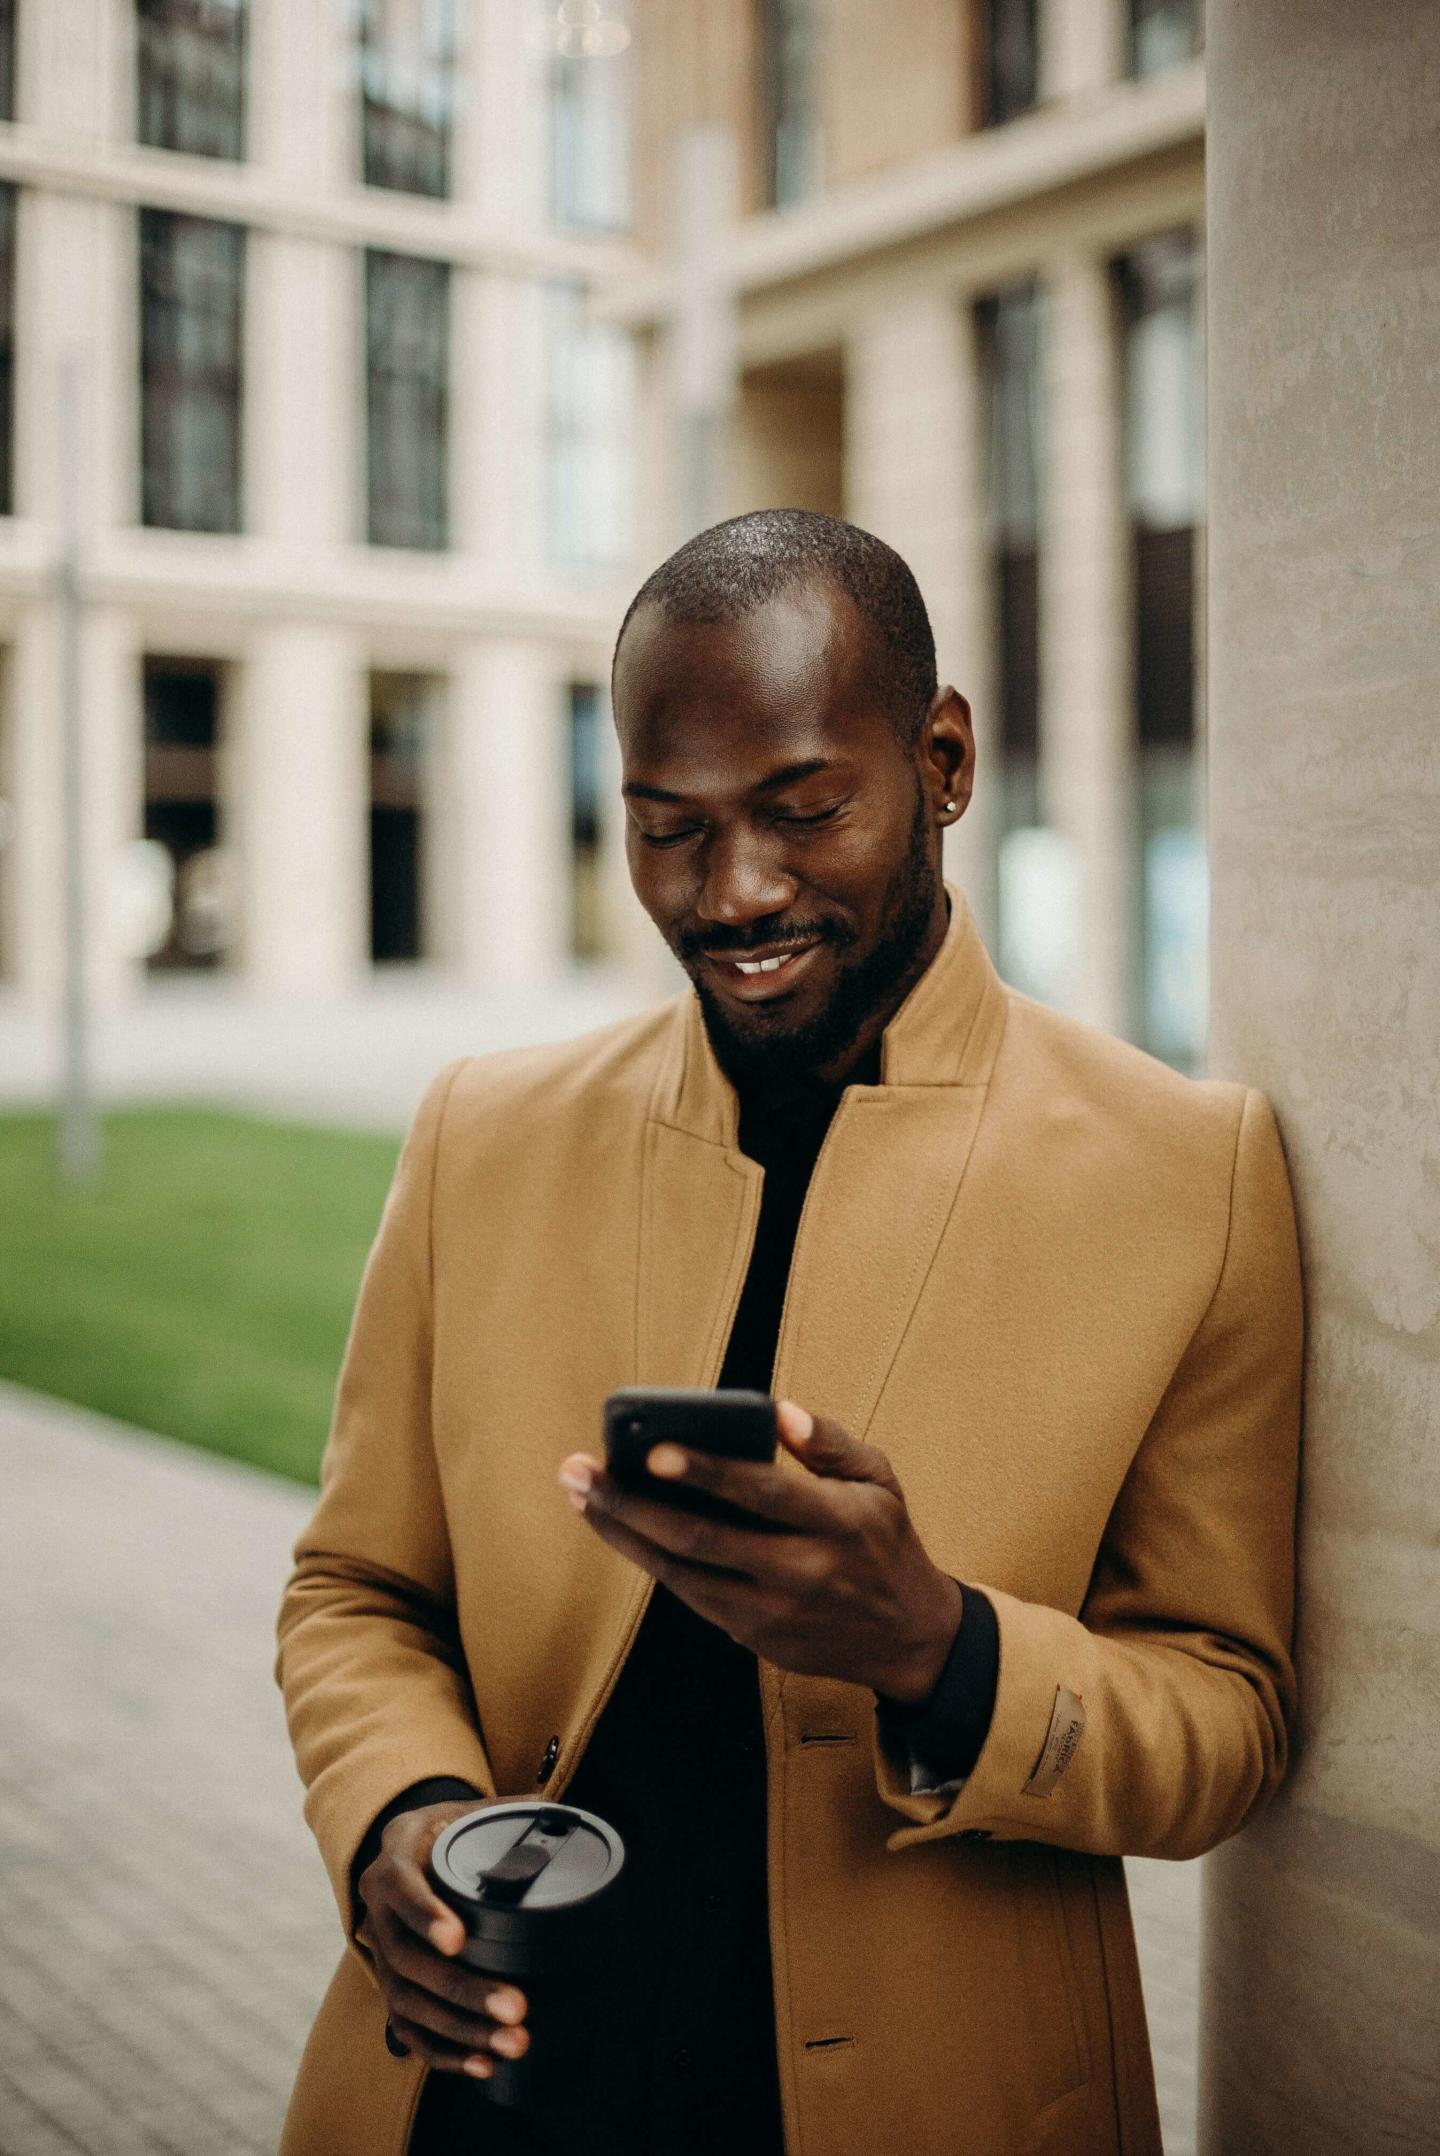 selective focus photo of smiling man looking at his phone